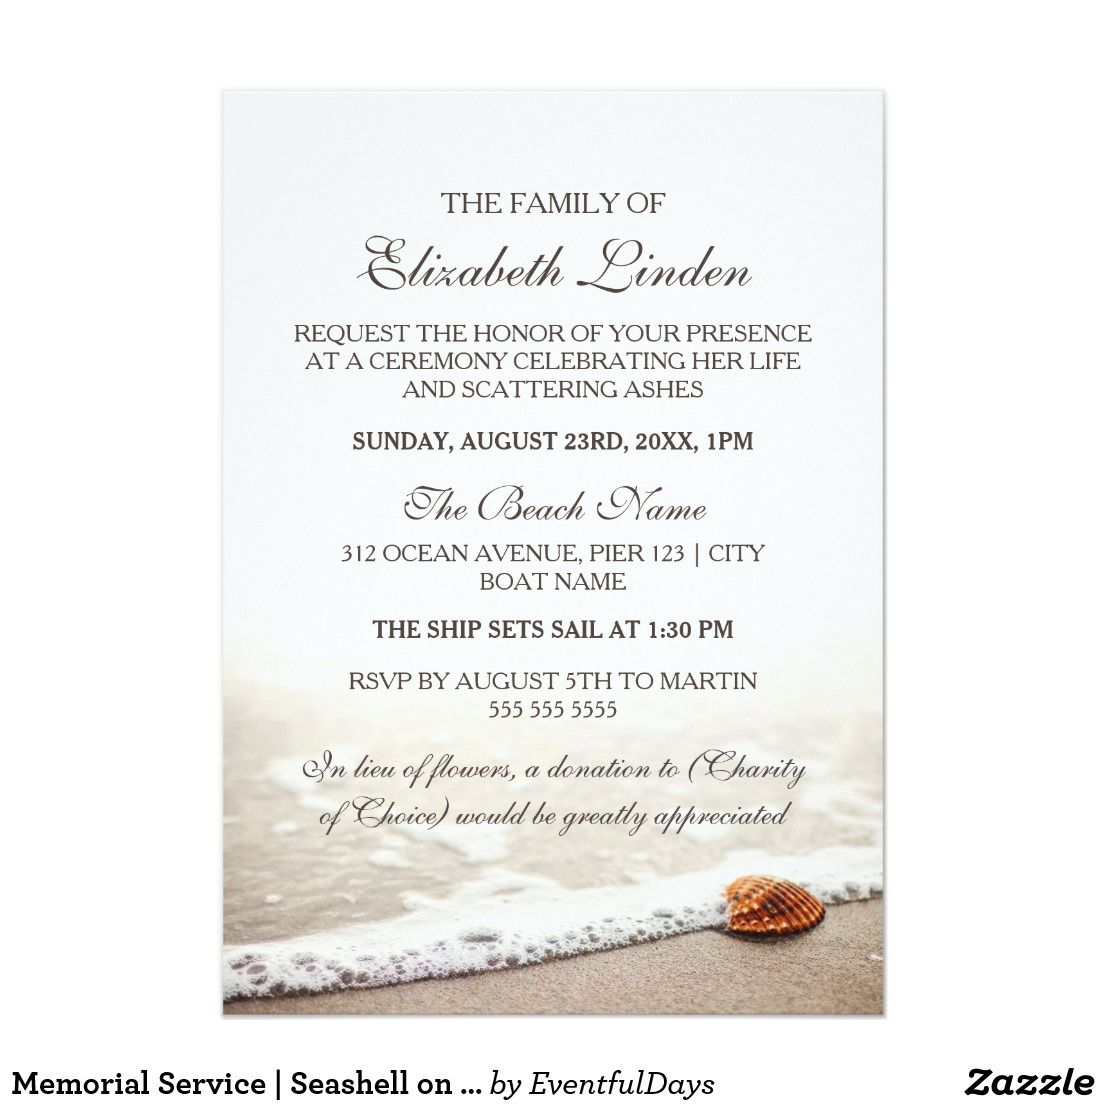 Memorial Service Seashell On The Beach Invitation Zazzle Com